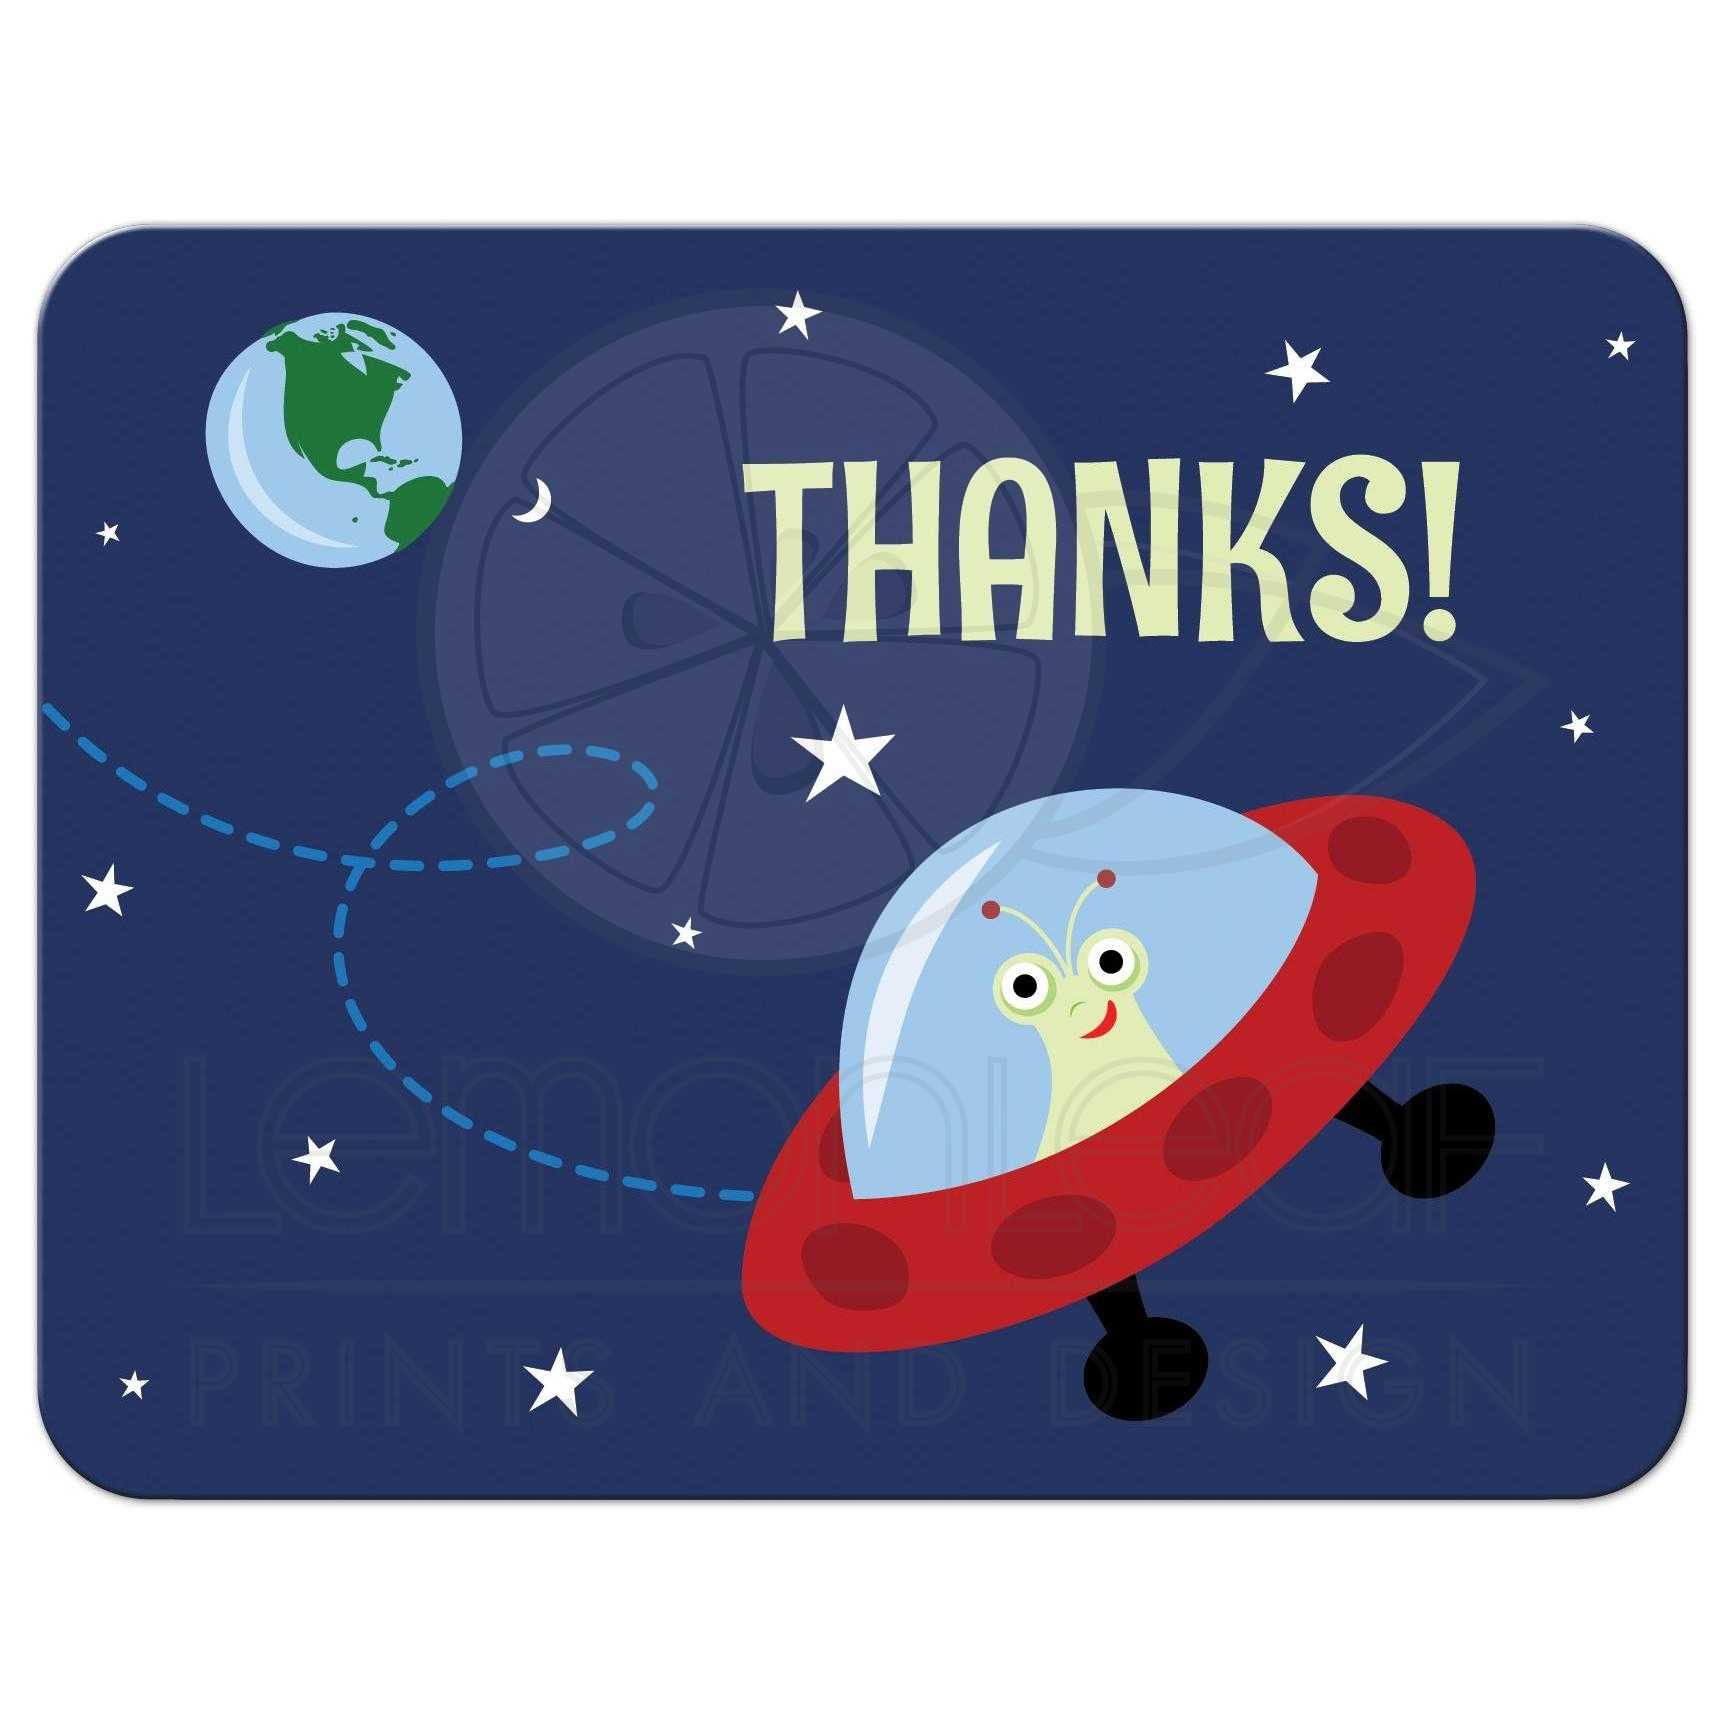 space themed flat birthday party thank you card with cartoon alien